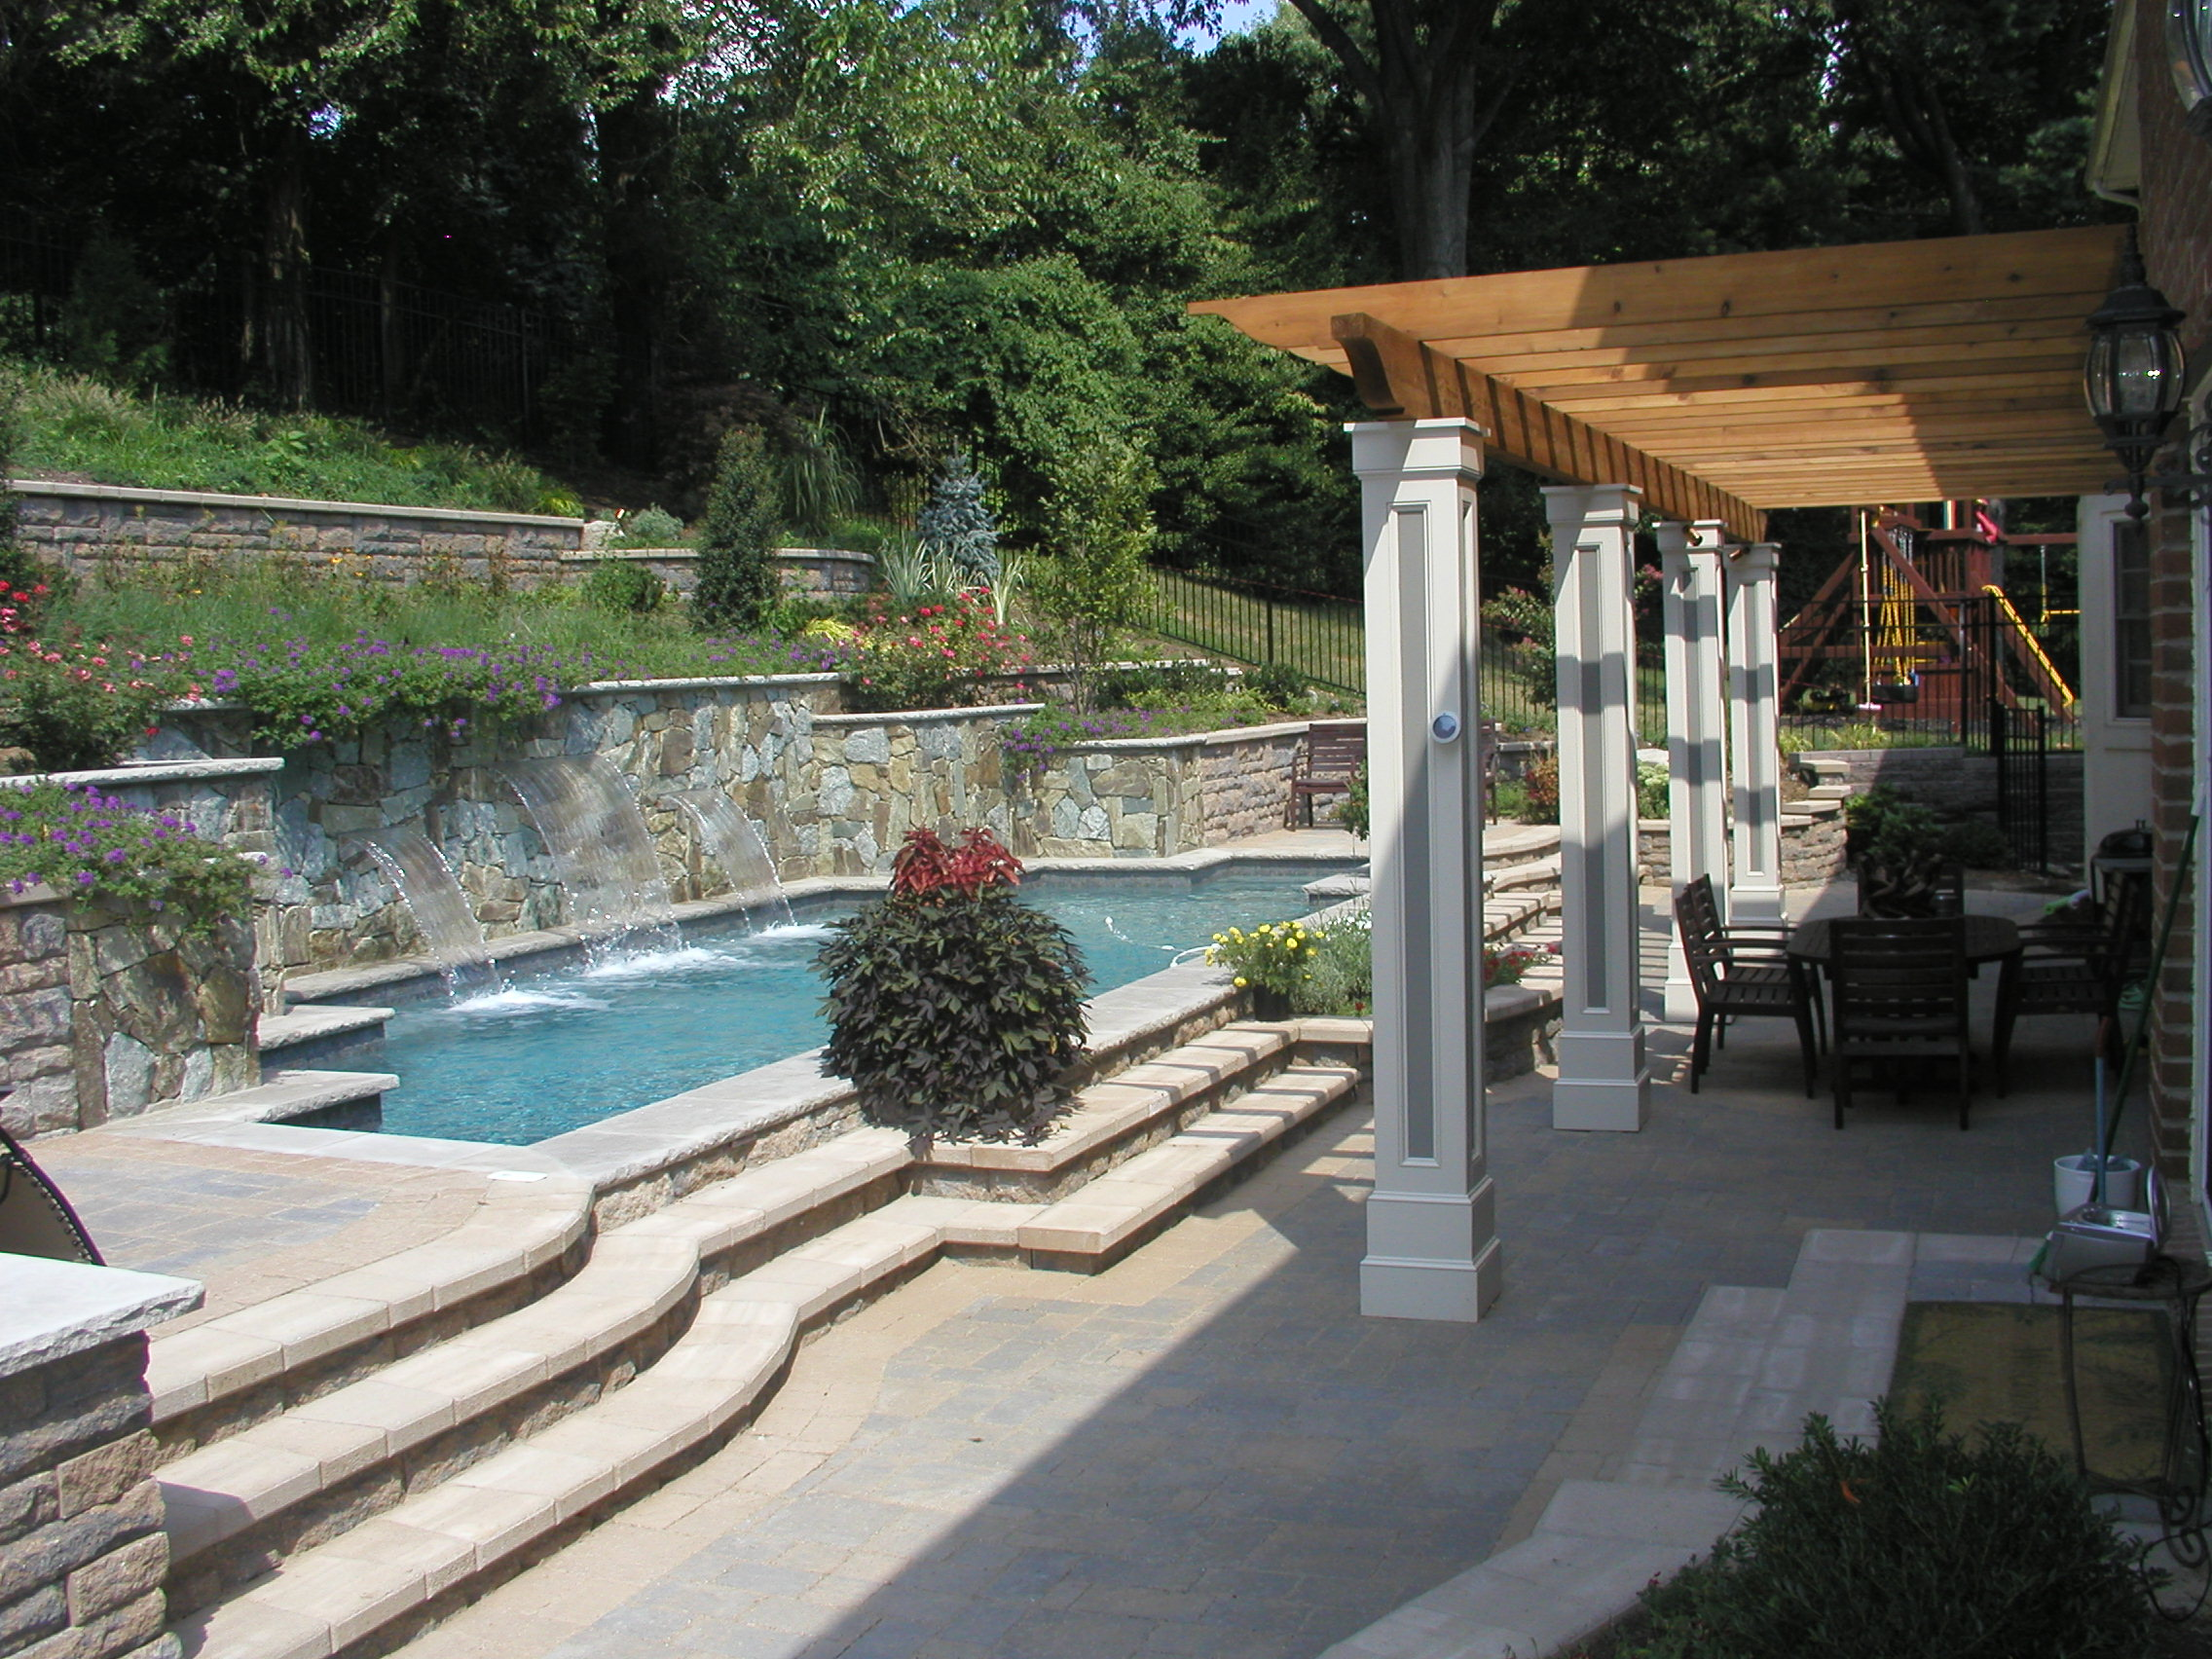 Hillside Landscaping And Pool In Chevy Chase Md Land